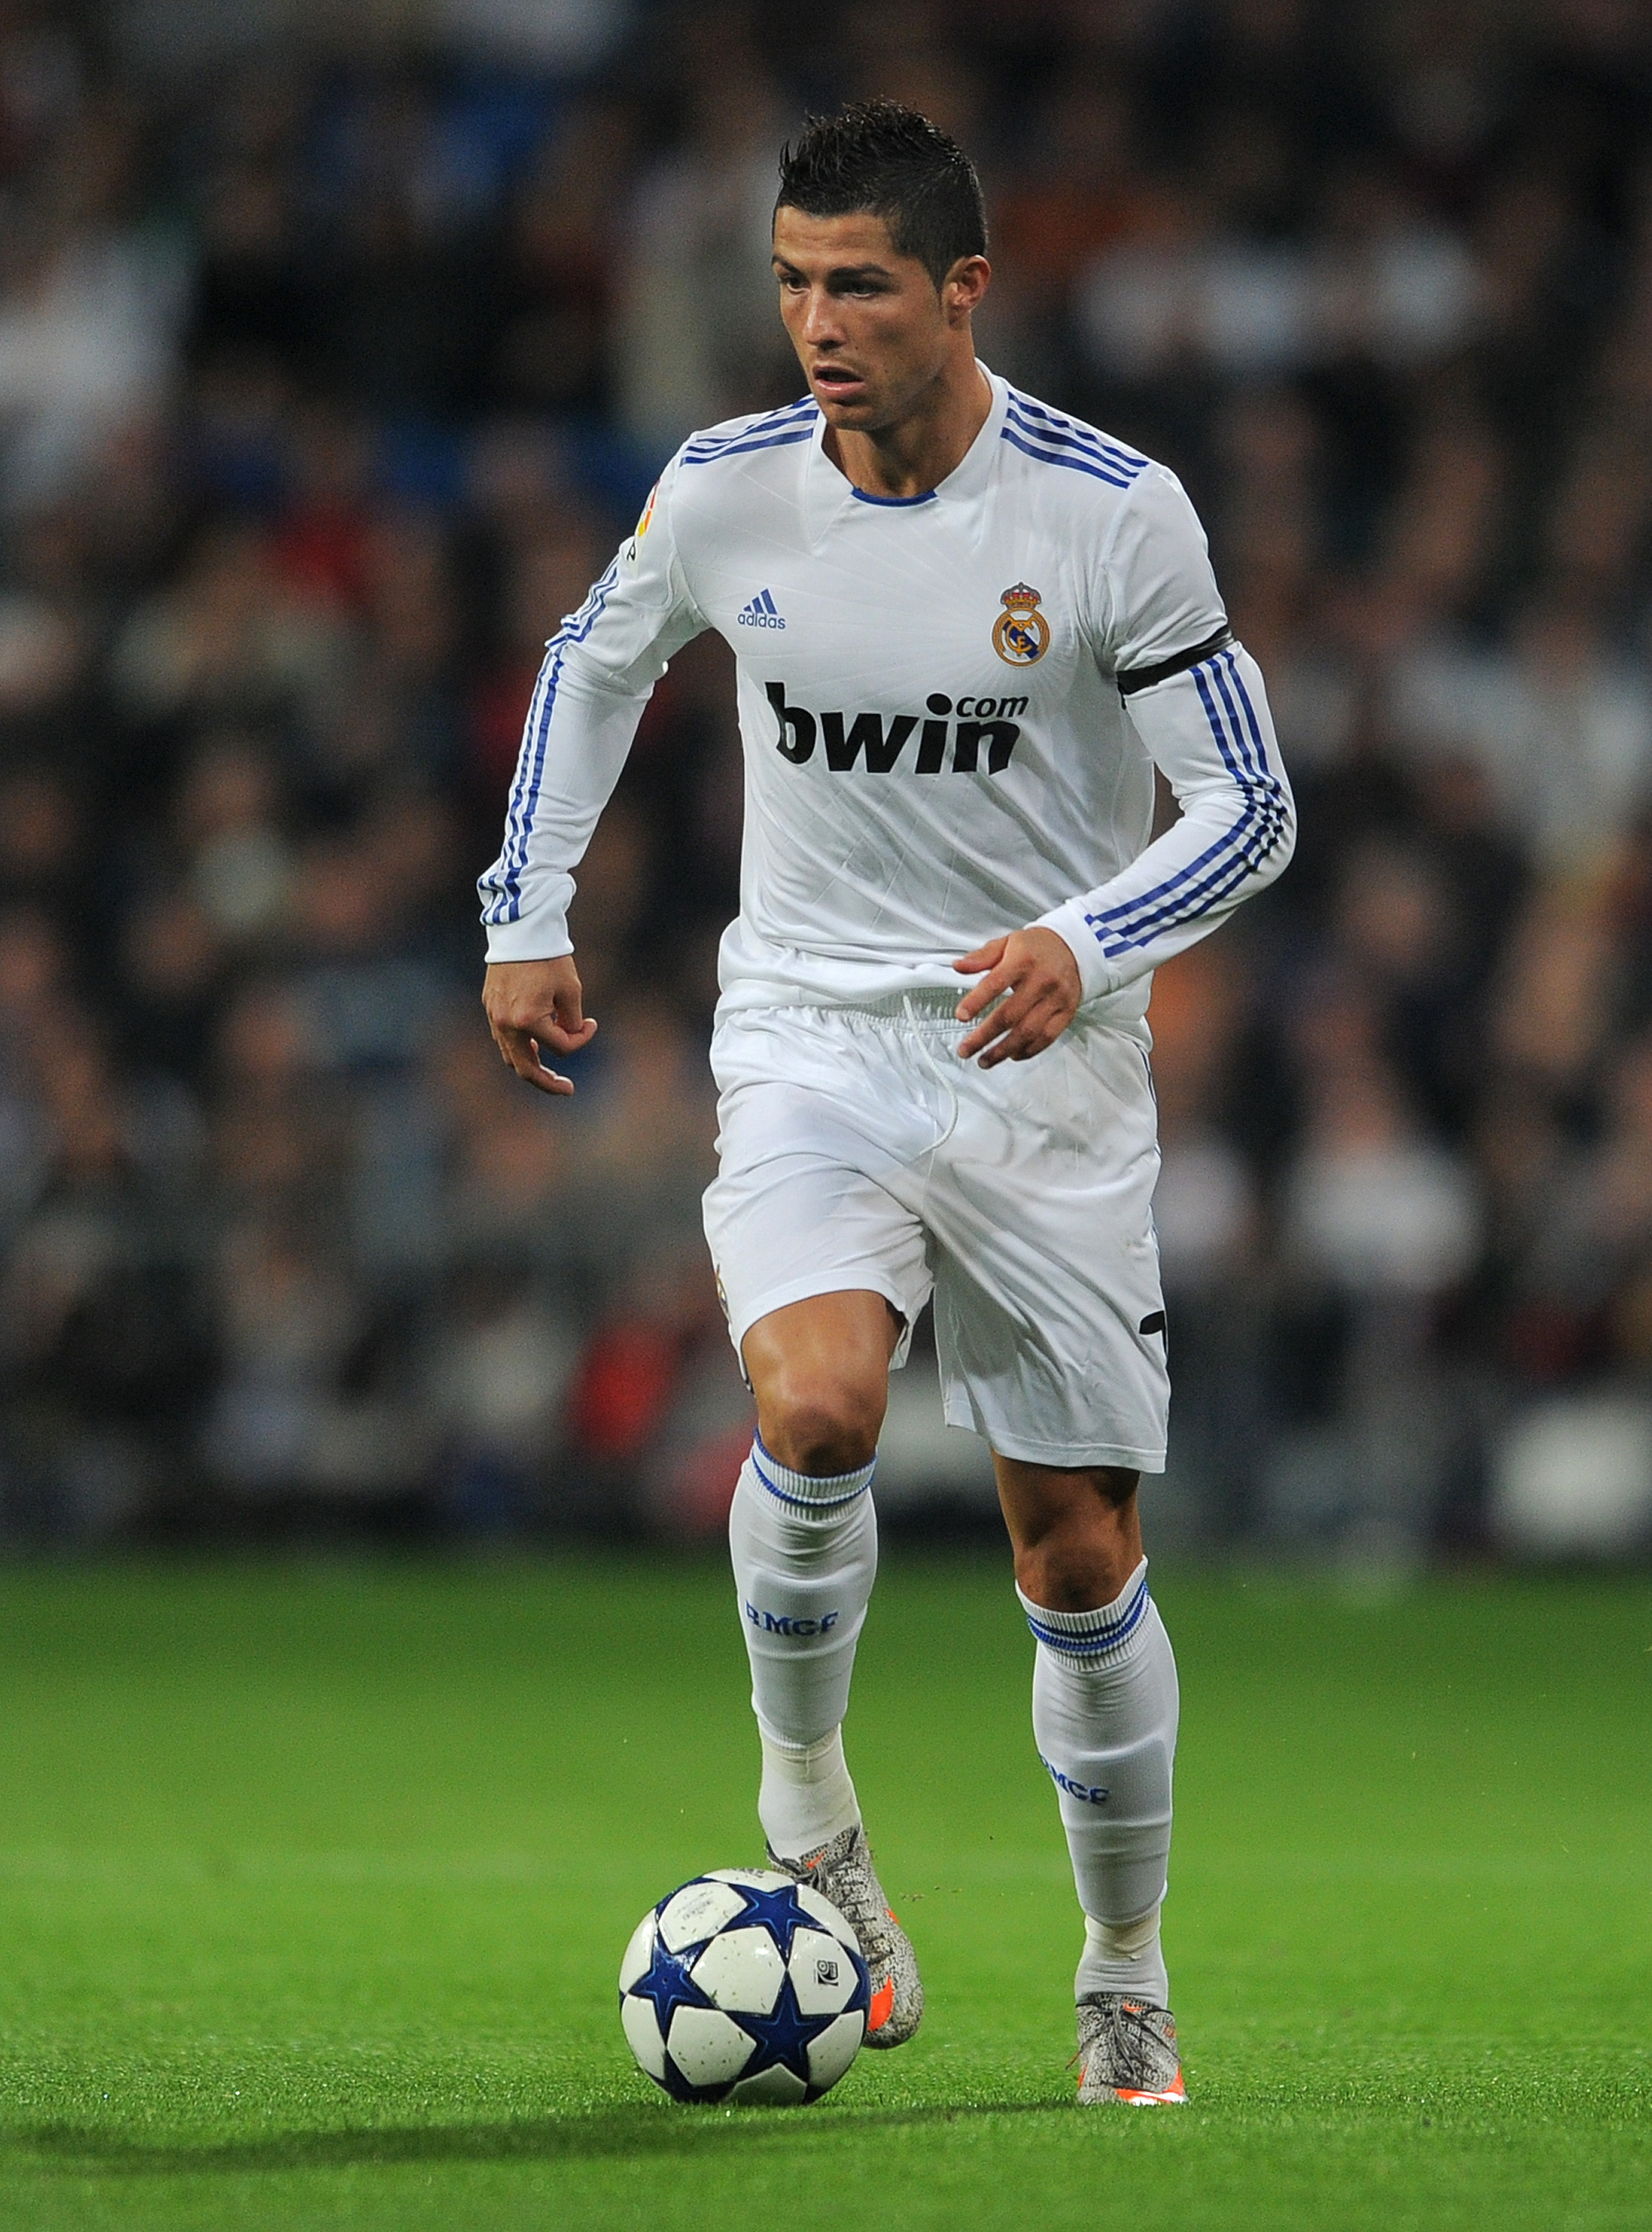 MADRID, SPAIN - JANUARY 13:  Cristiano Ronaldo of Real Madrid controls the ball during the quarter-final Copa del Rey first leg match between Real Madrid and Atletico Madrid at Estadio Santiago Bernabeu on January 13, 2011 in Madrid, Spain.  (Photo by Jas